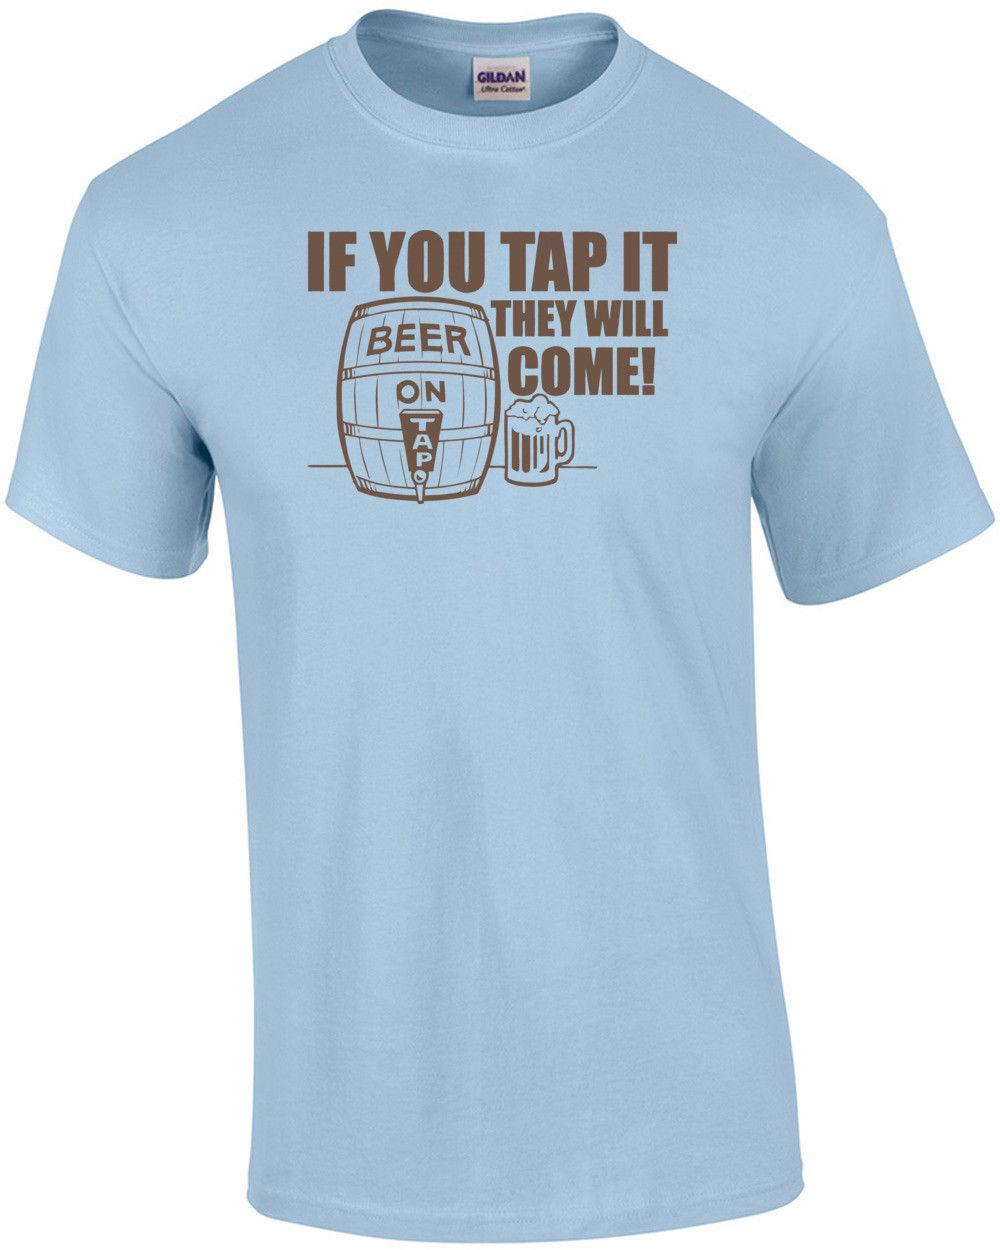 34ca028b If You Tap It They Will Come T Shirt Funny Joke Keg Stand Beer Tap Drinking  Game Men Women Unisex Fashion Tshirt Quality T Shirts T Shirt Slogans From  ...